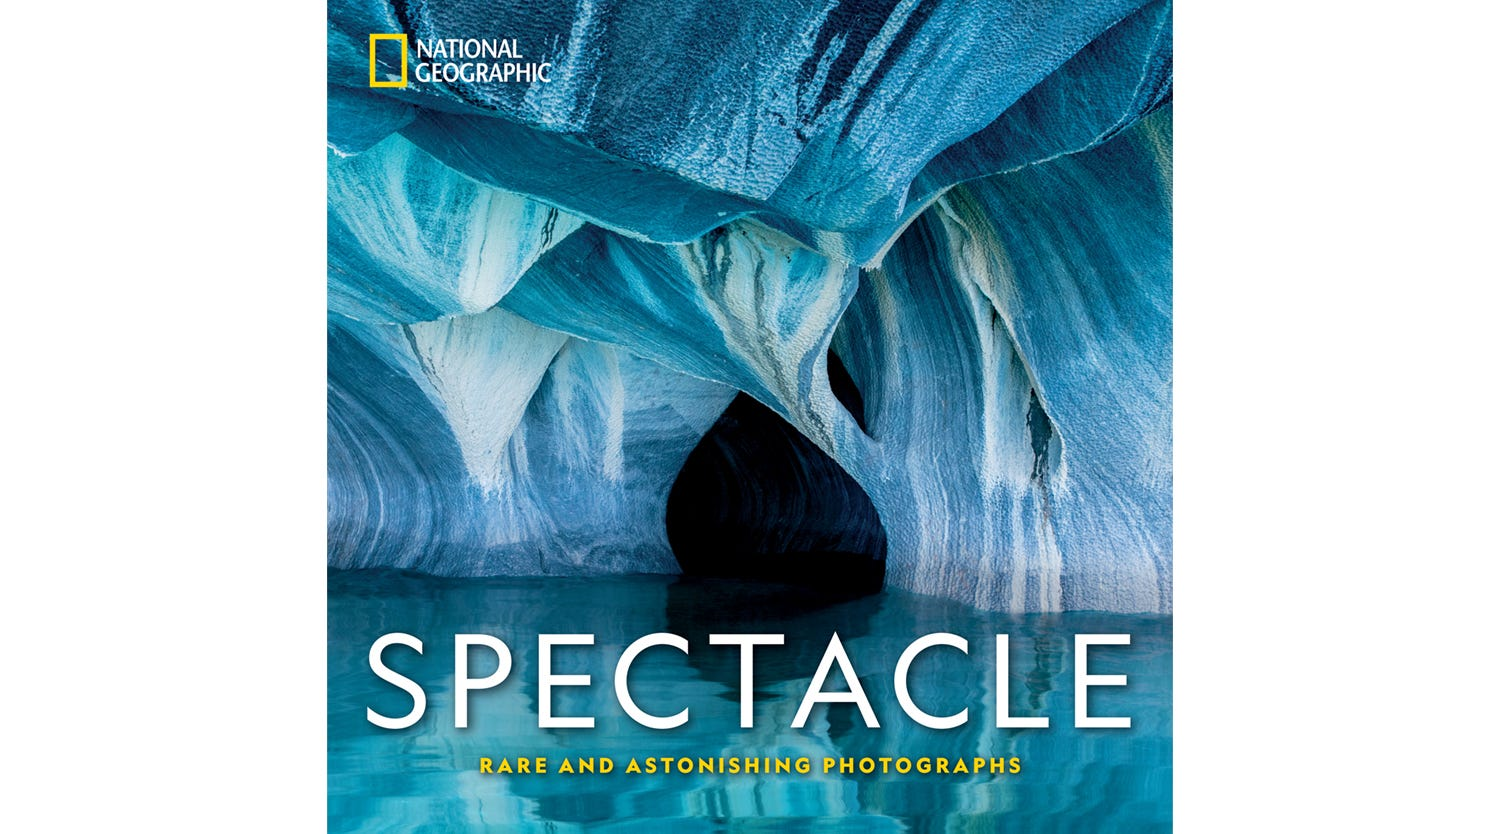 Spectacle: Rare and Astonishing Photographs, by Mark Thiessen